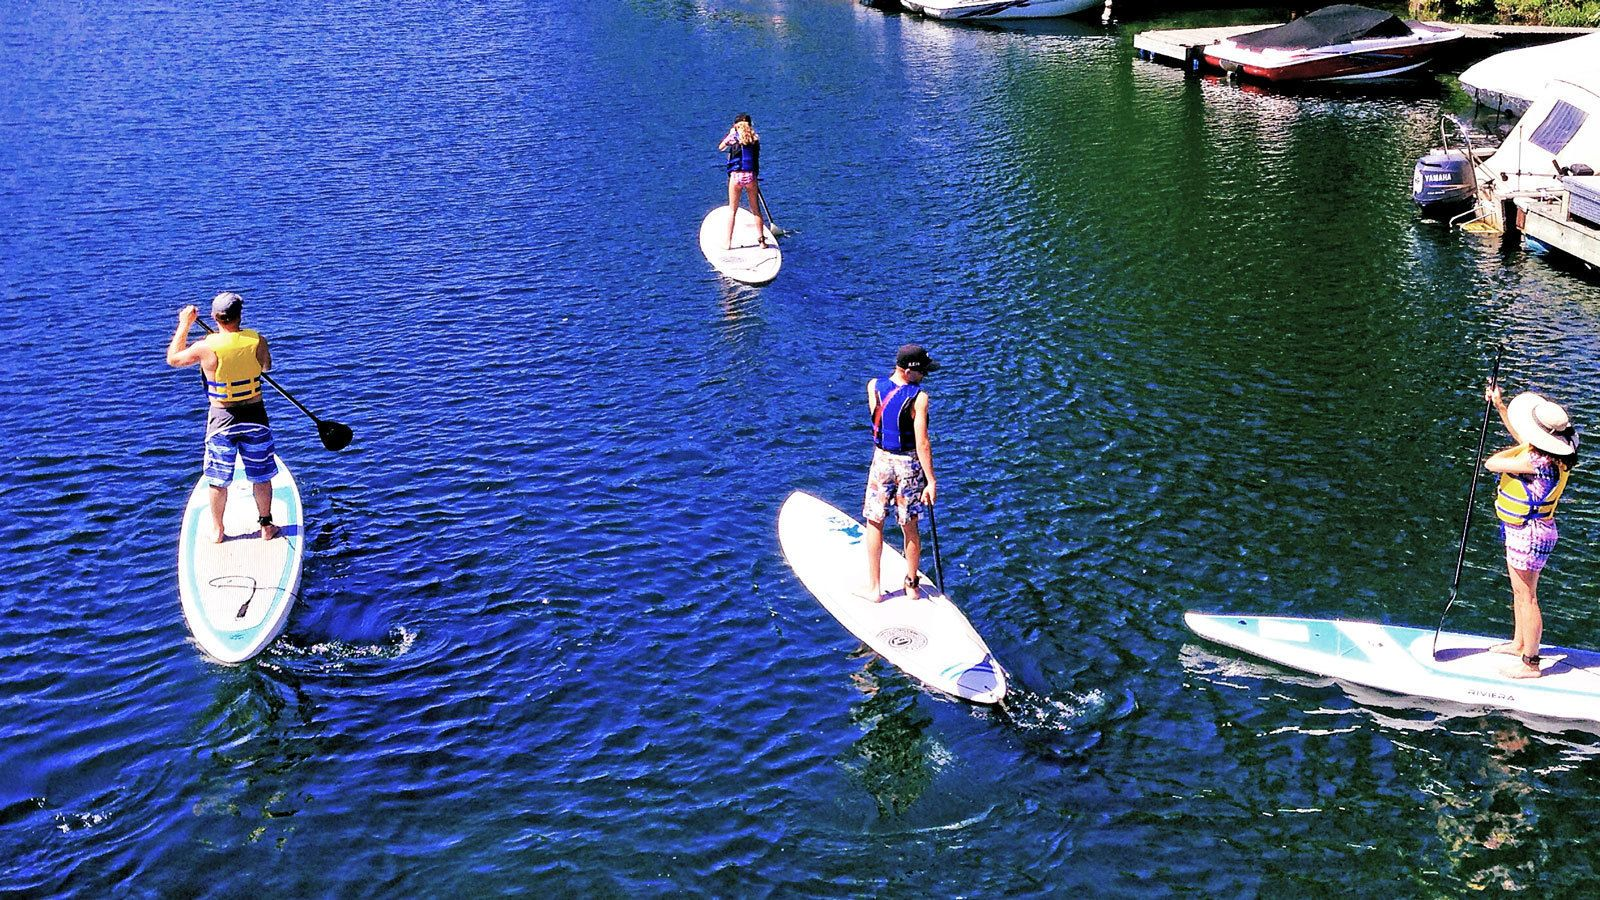 a group of paddleboarders near docked boats in Toronto